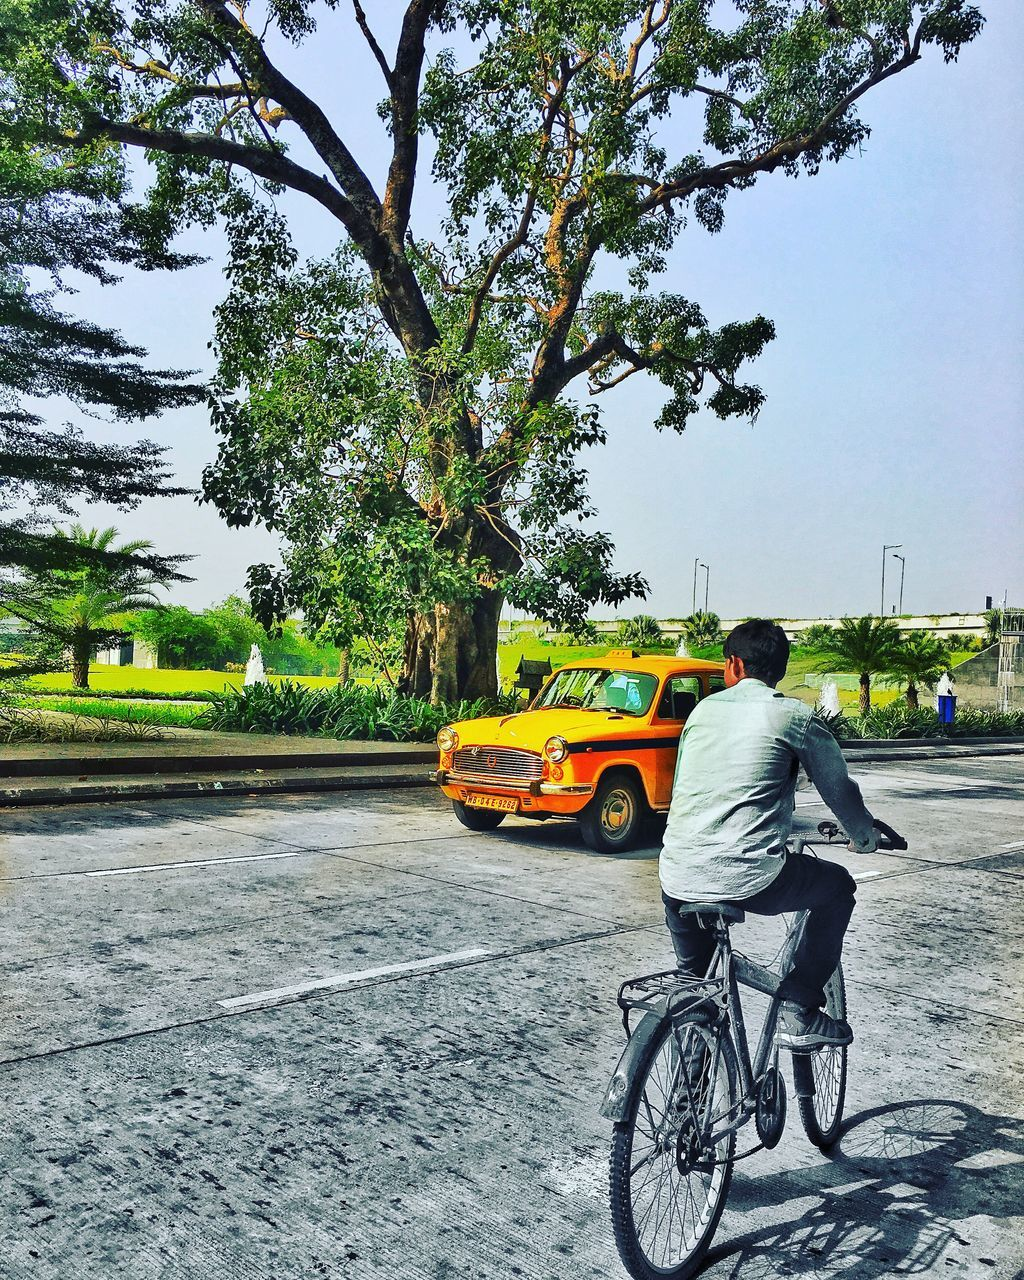 tree, transportation, mode of transport, land vehicle, bicycle, day, street, outdoors, real people, yellow, road, one person, city, men, architecture, sky, people